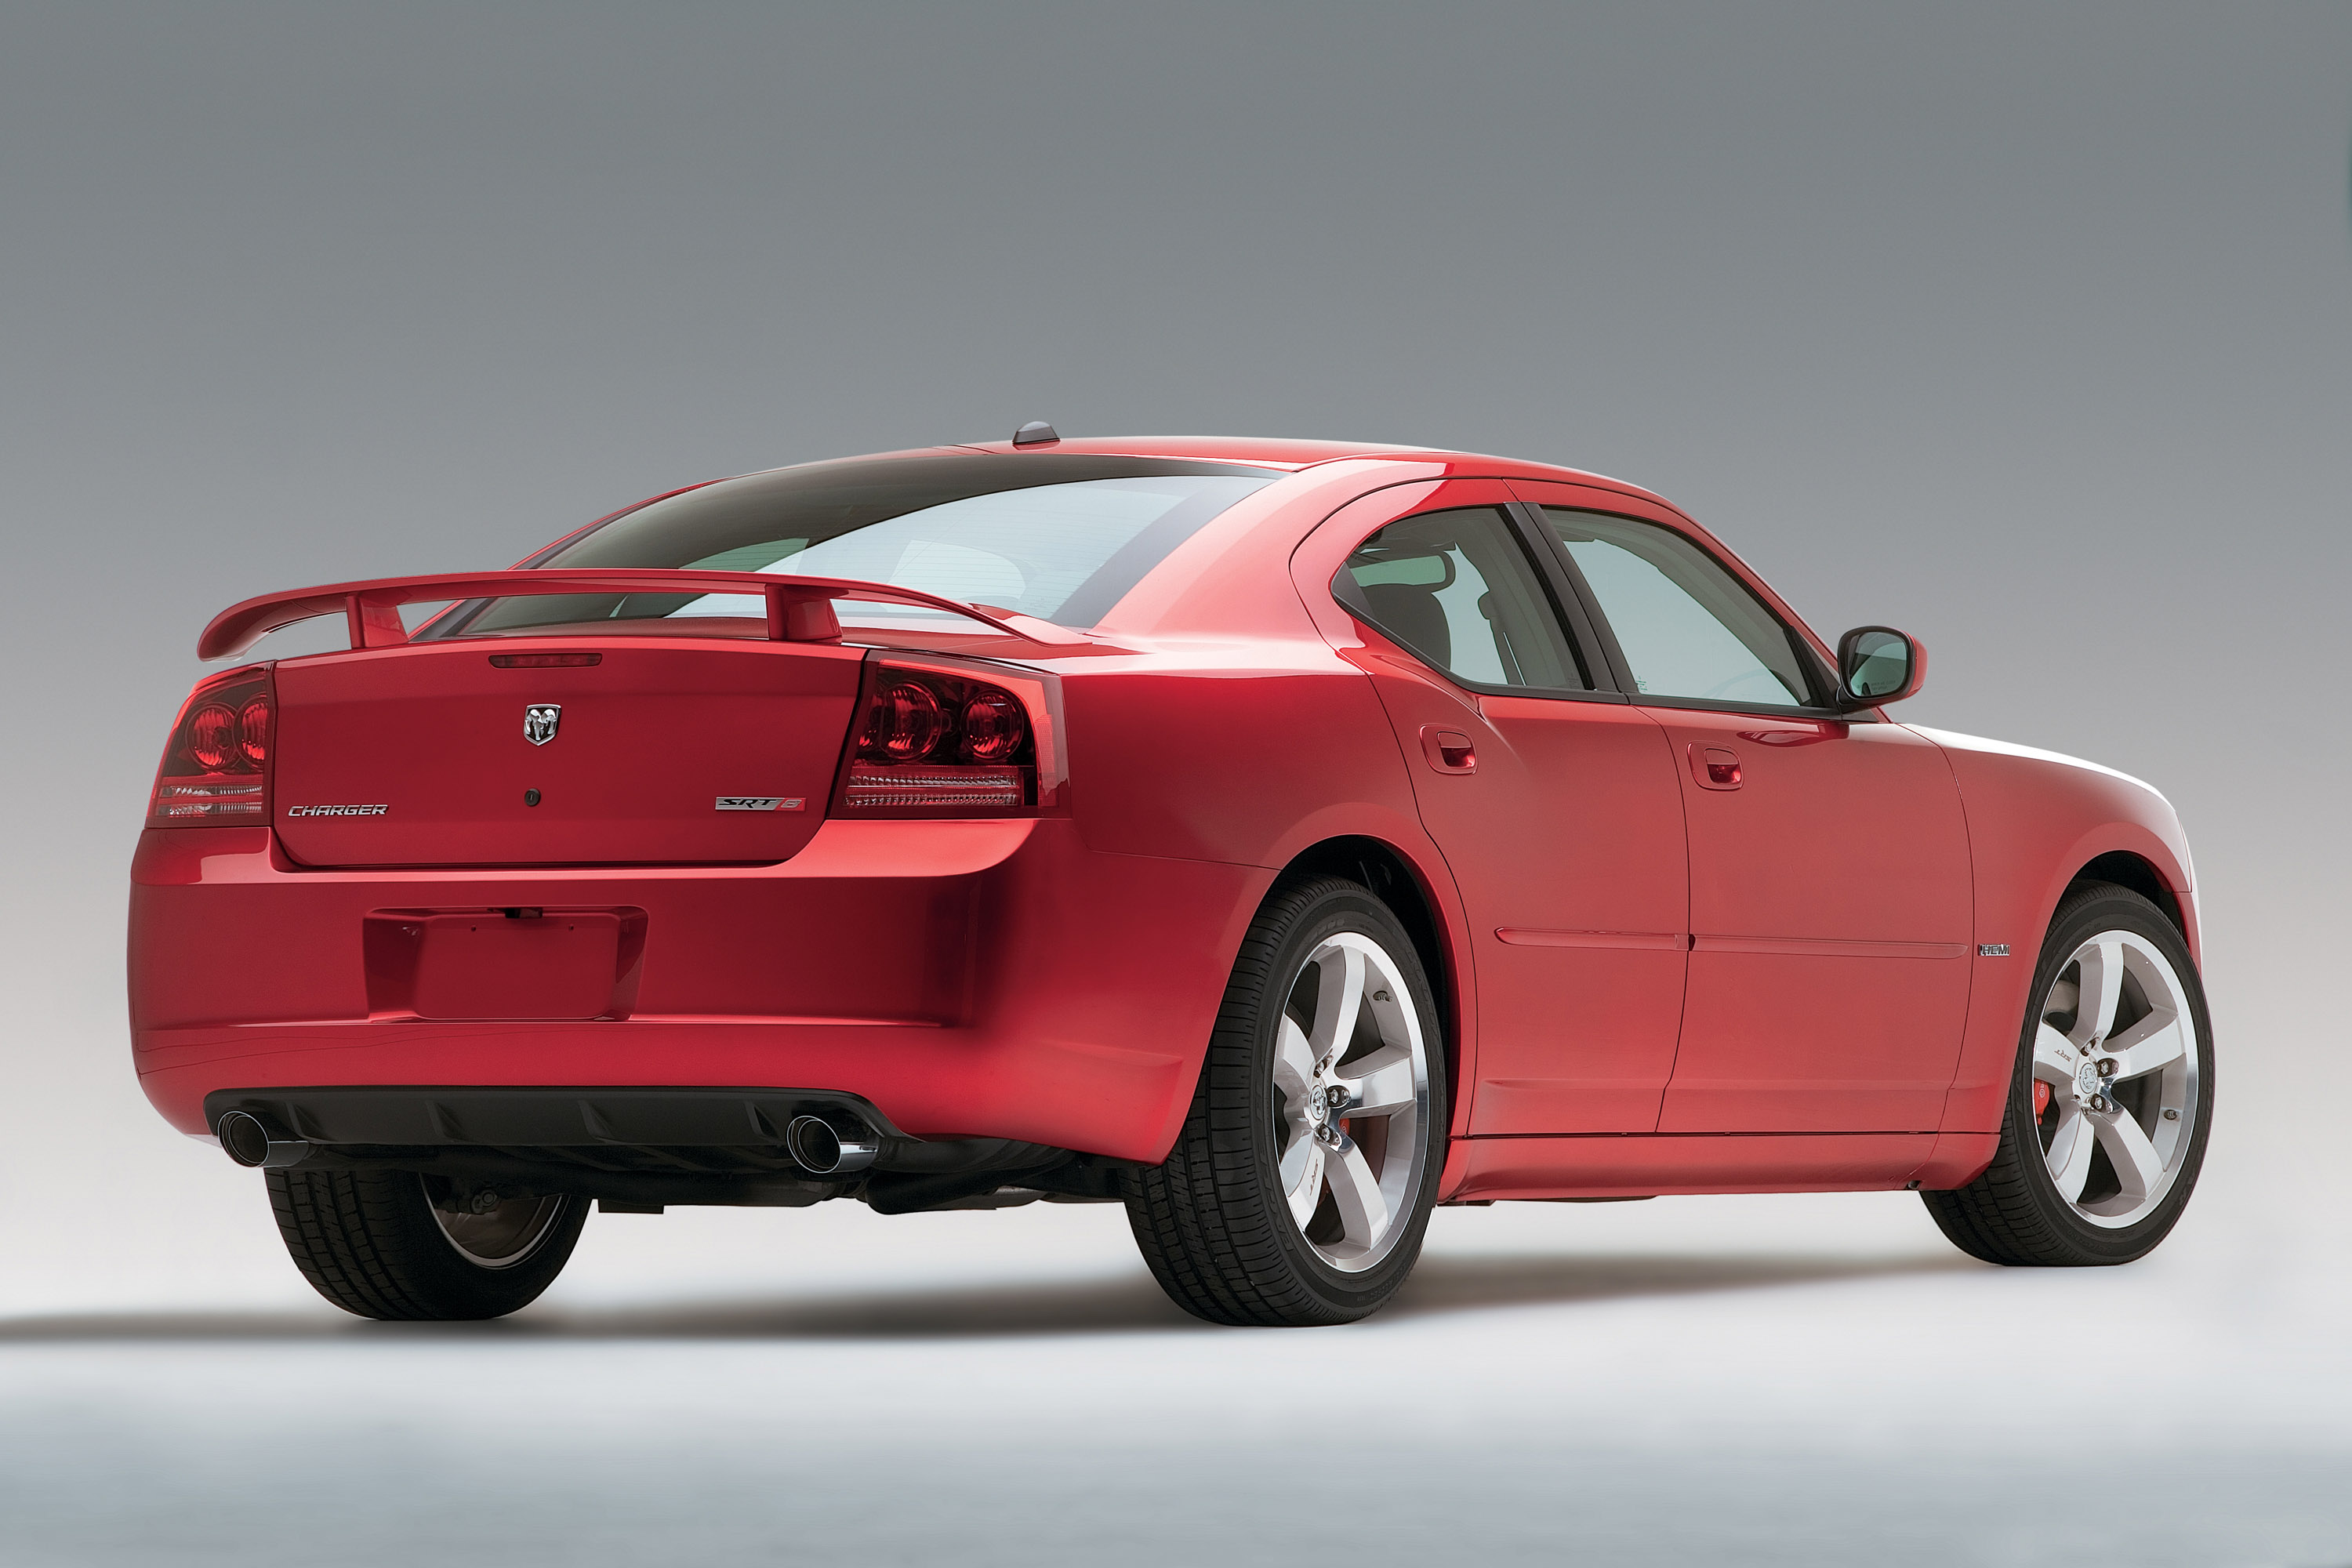 2006 Dodge Charger SRT8 | Top Speed